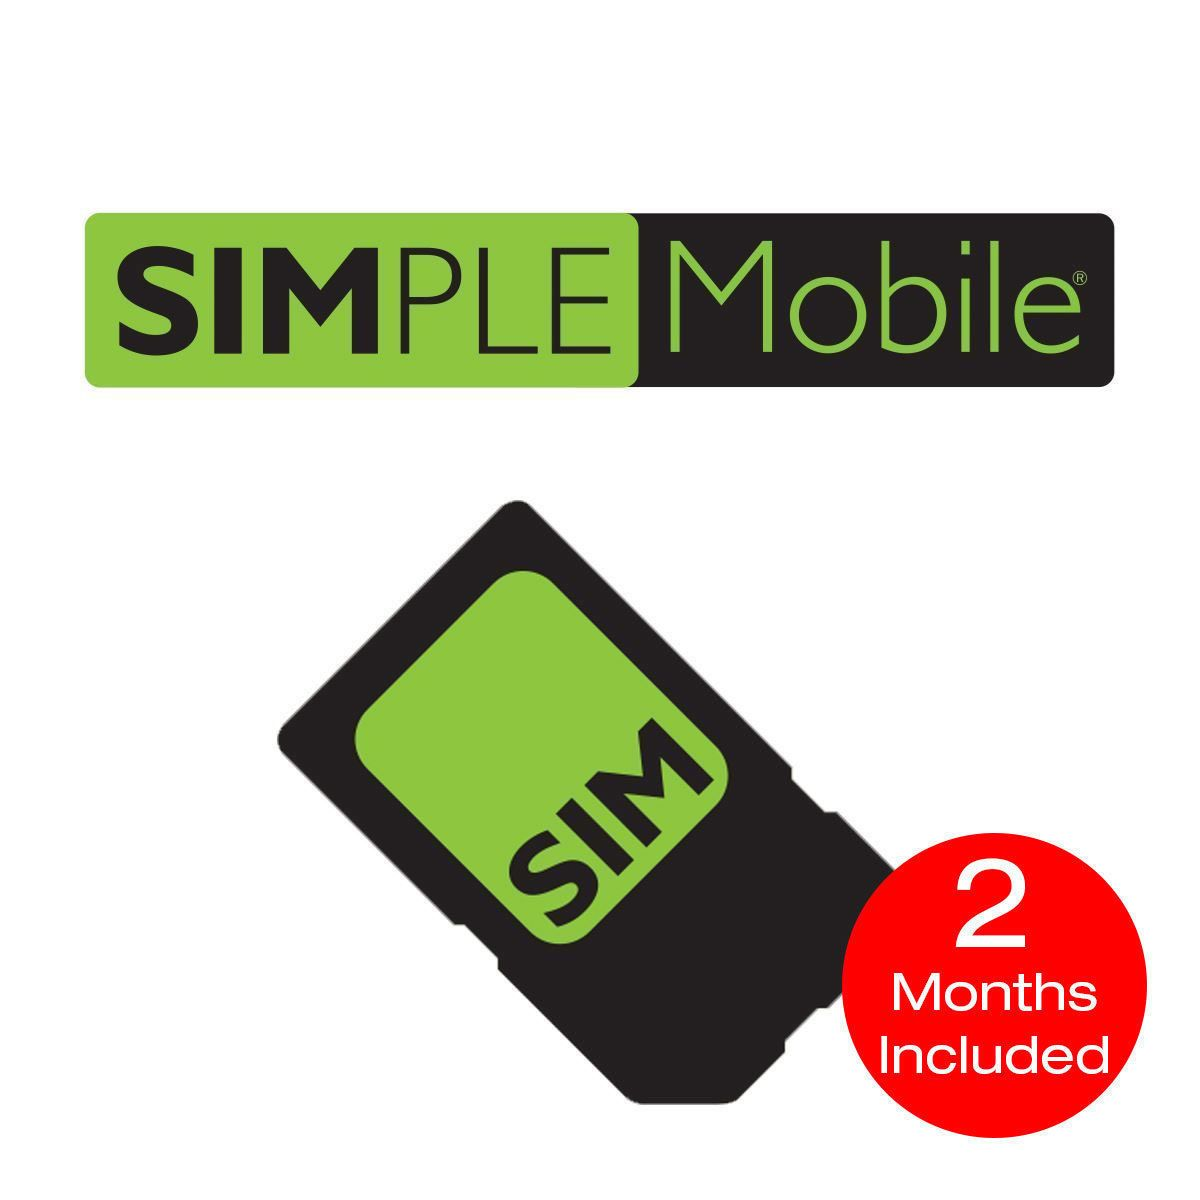 Phone Cards and SIM Cards 146492 PreLoaded Simple Mobile